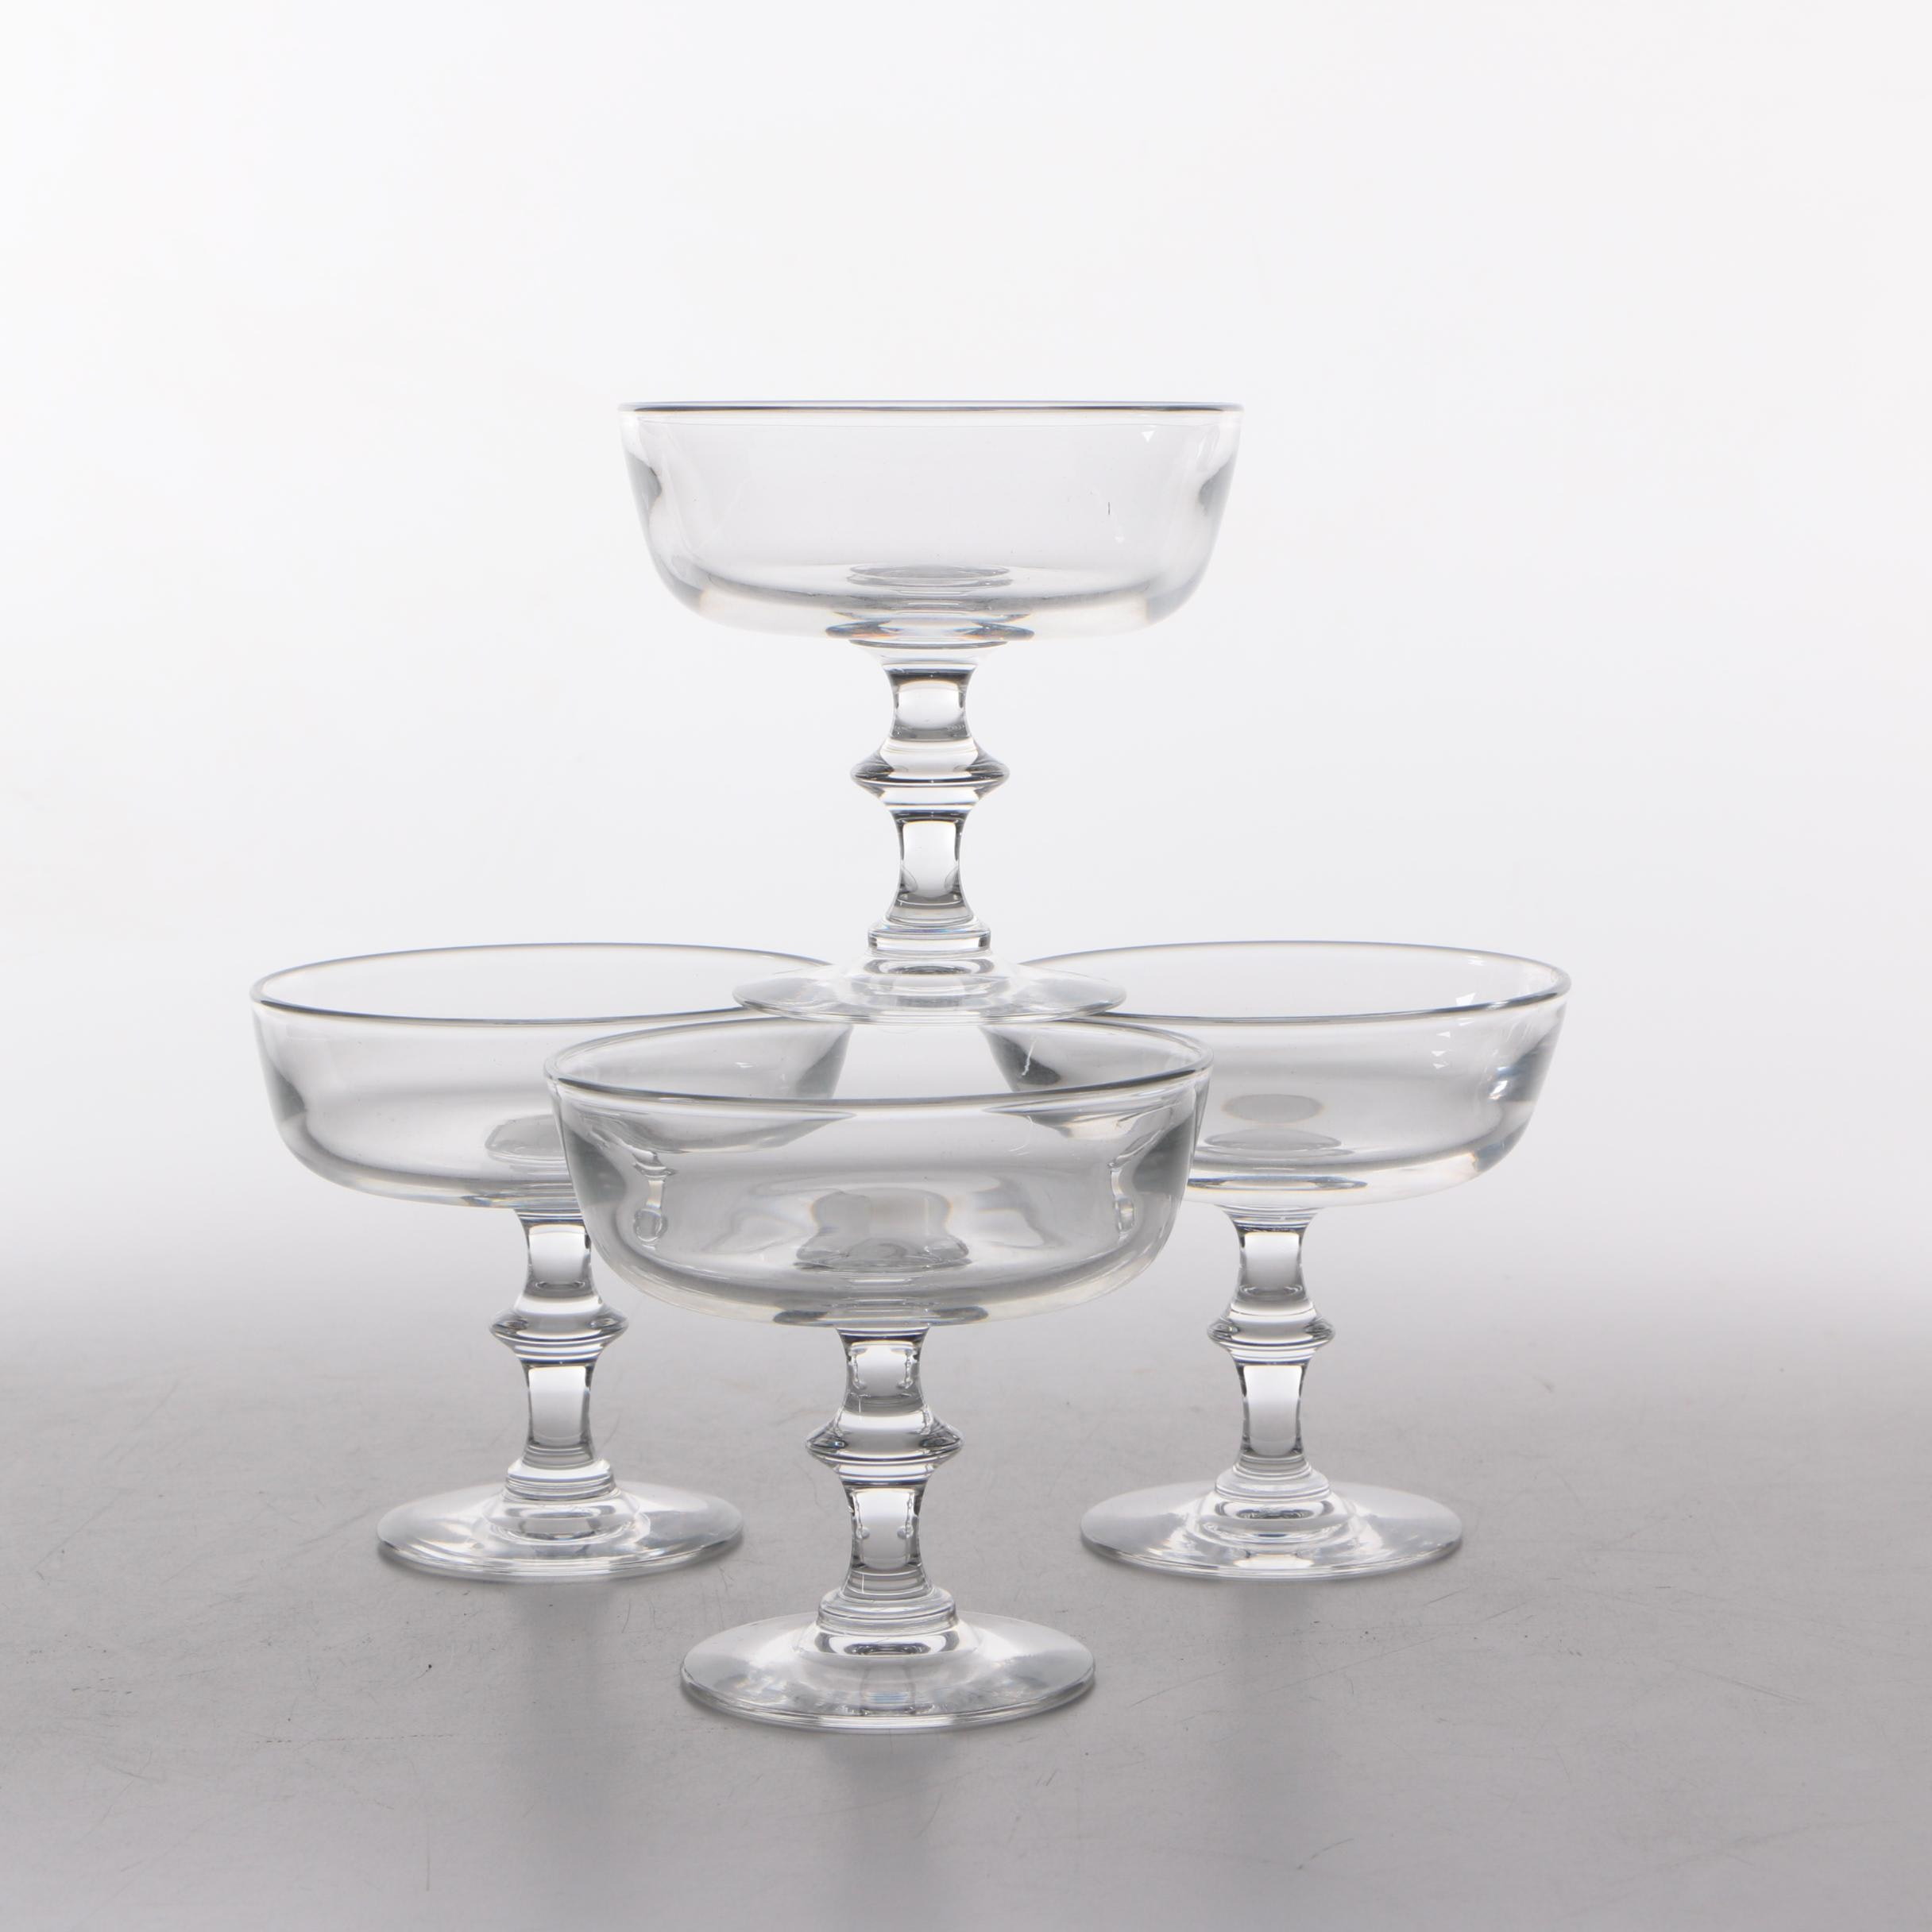 Steuben Glass Champagne Coups